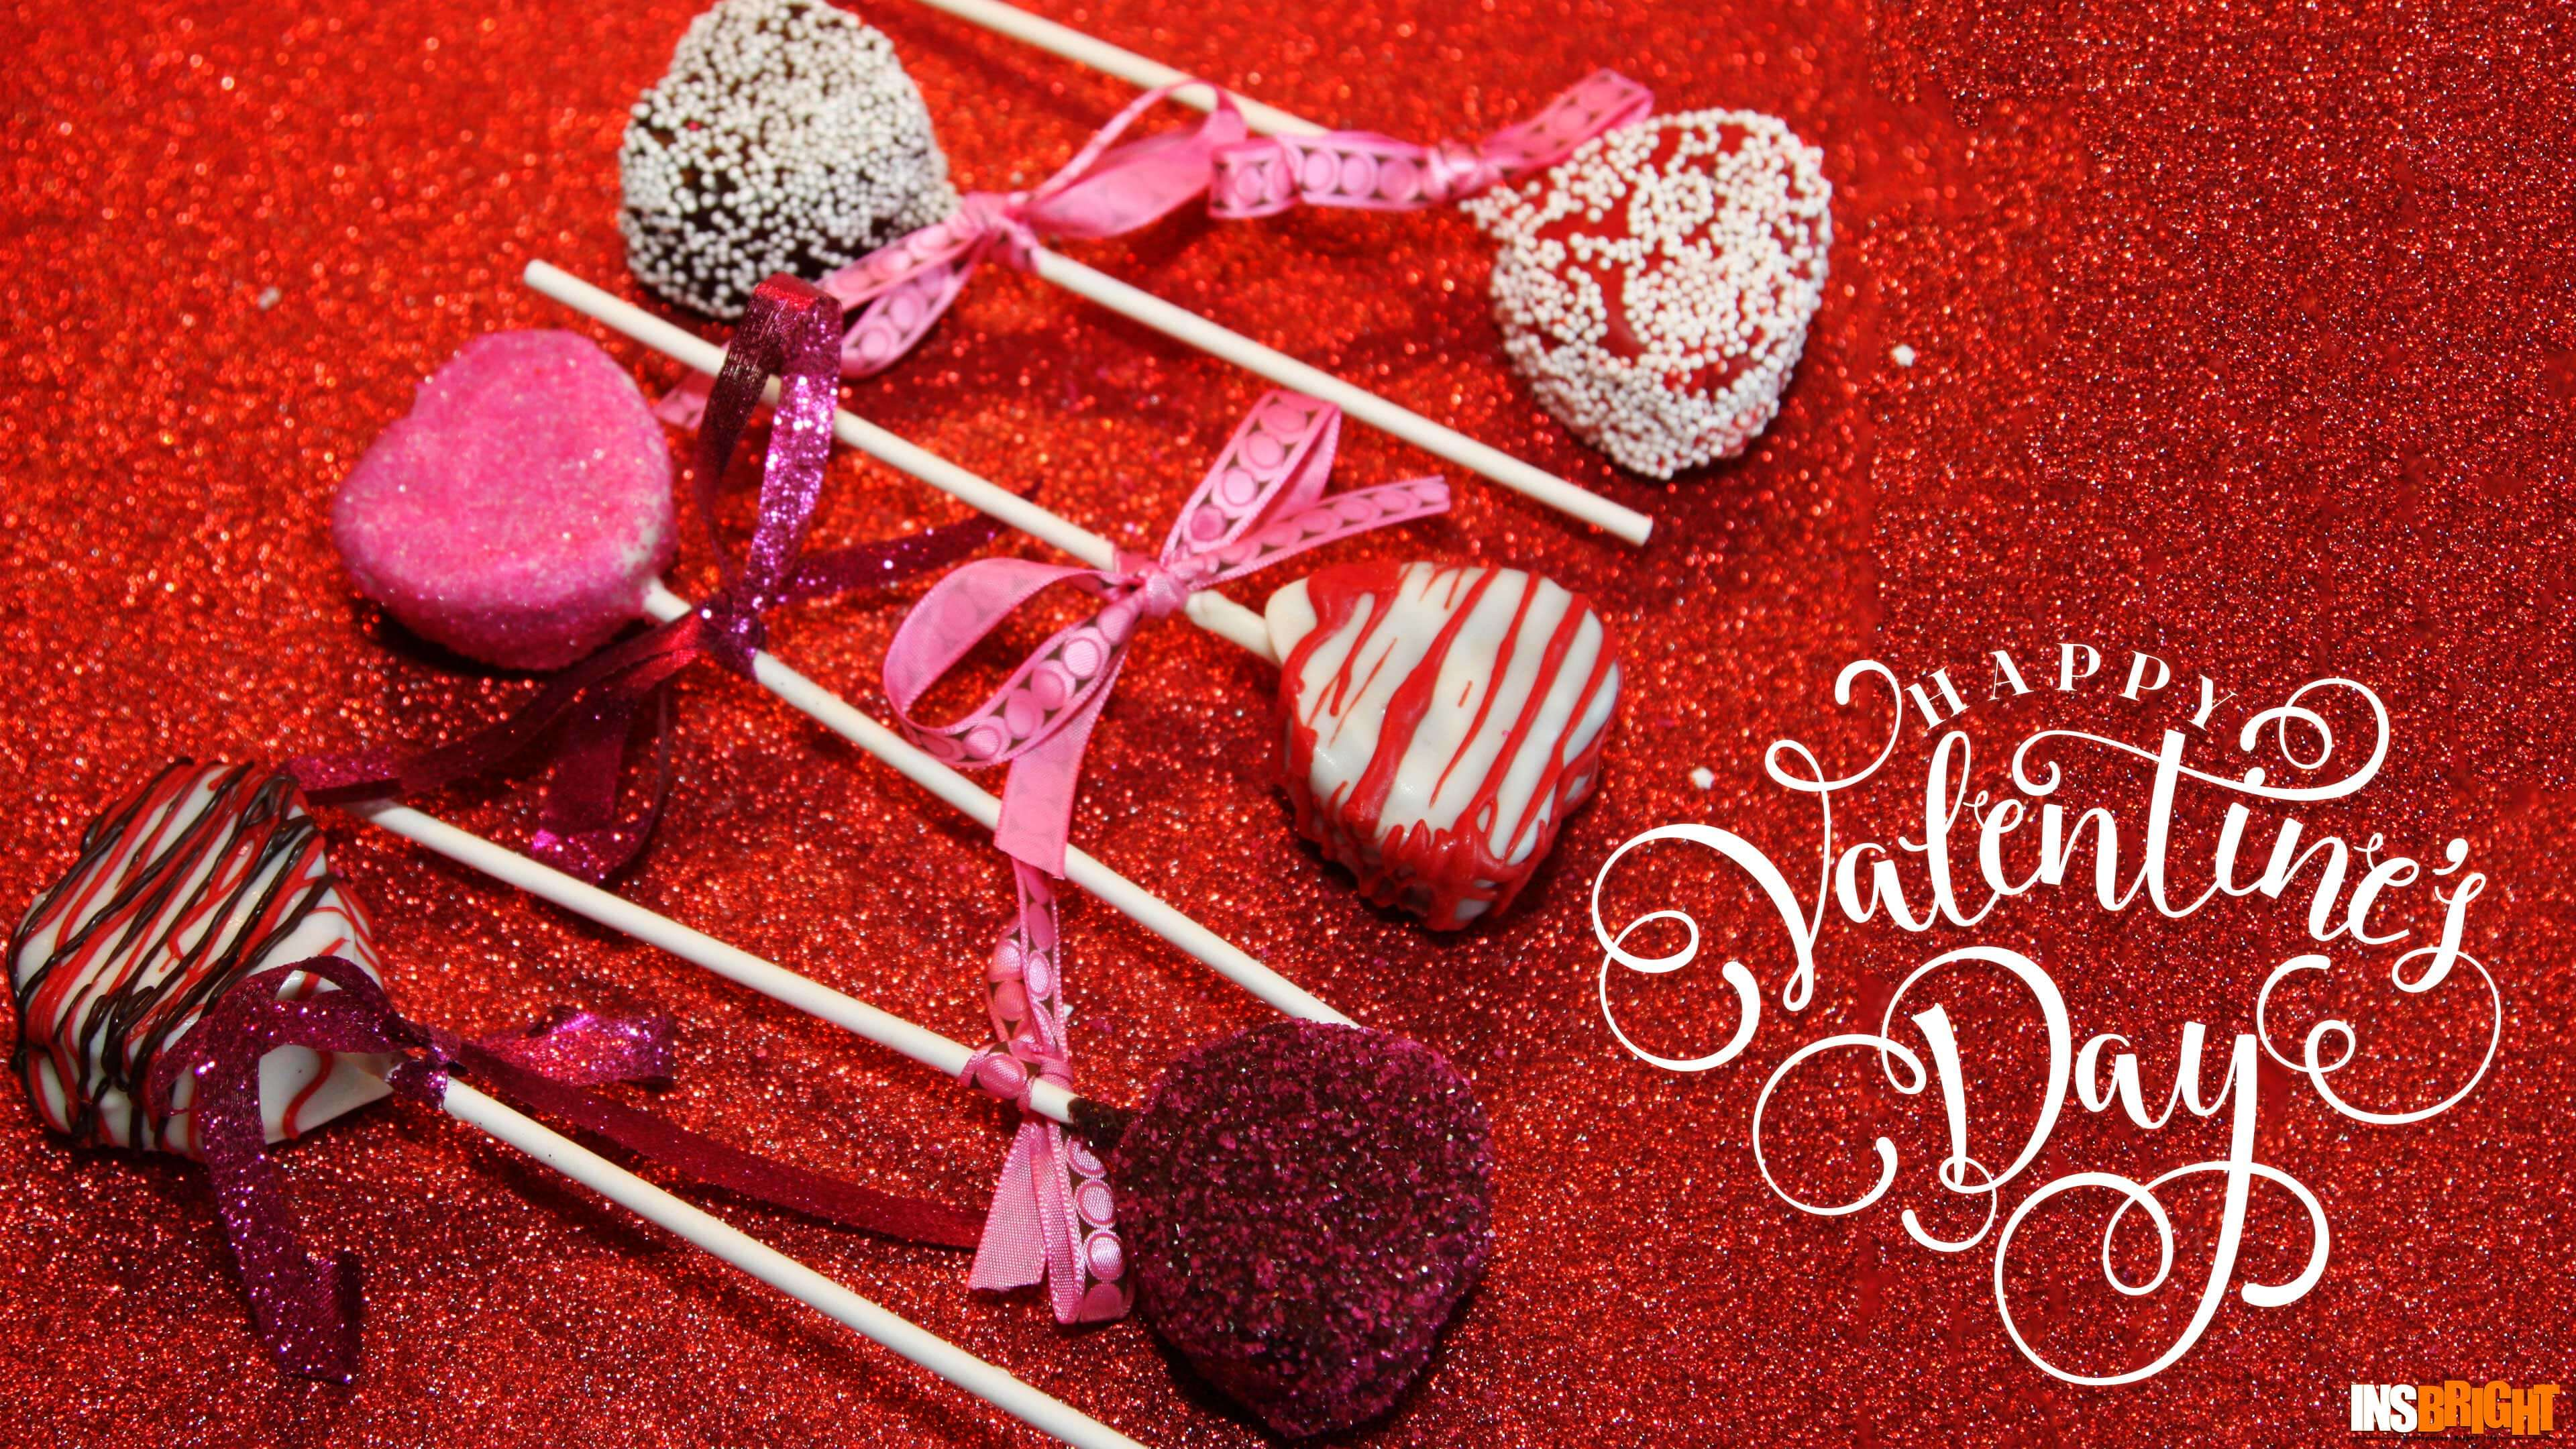 Free Download HD Valentines Day Wallpapers 2017